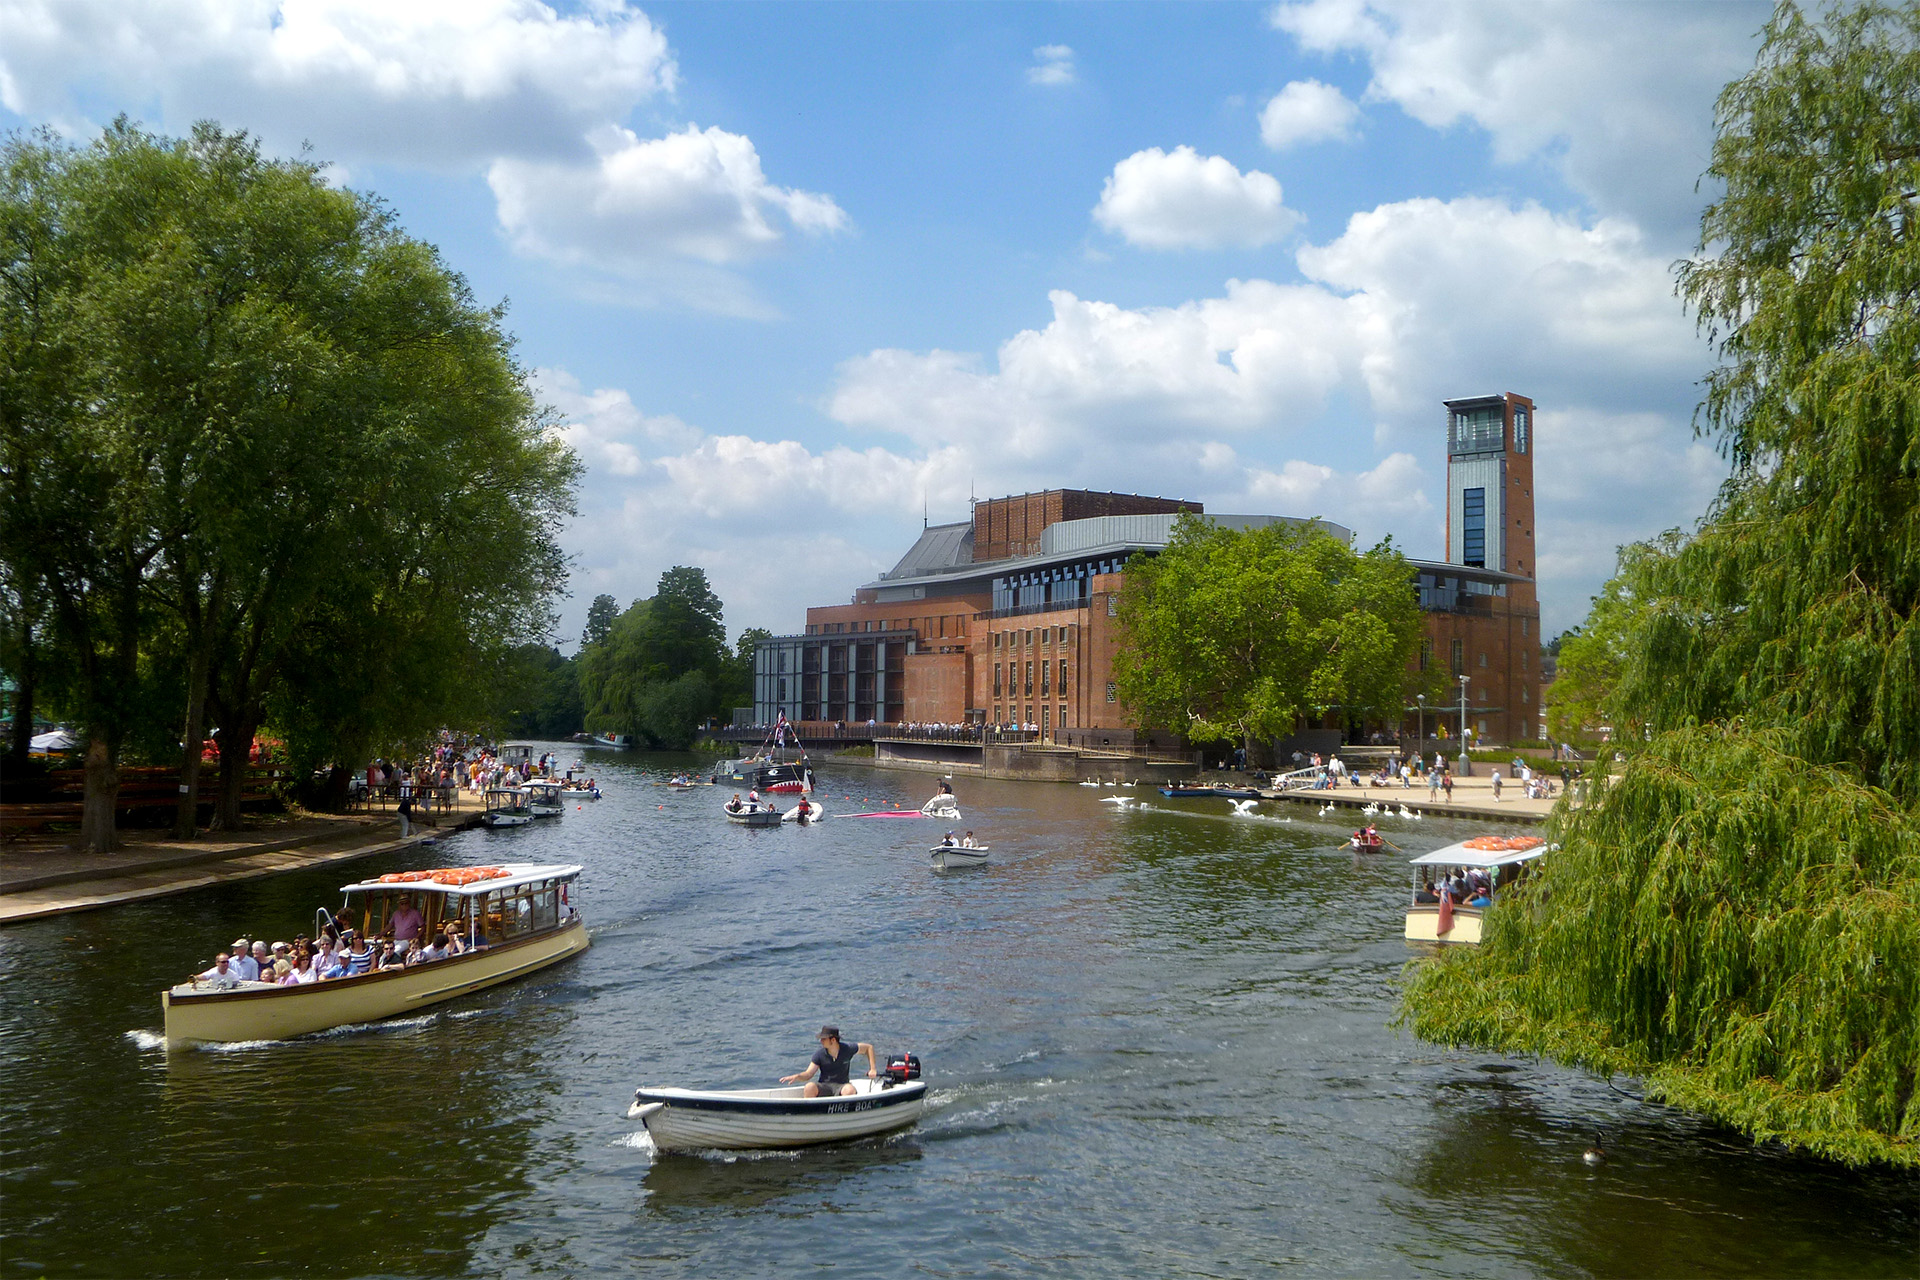 Royal Shakespeare Theatre photo by Ann Rob